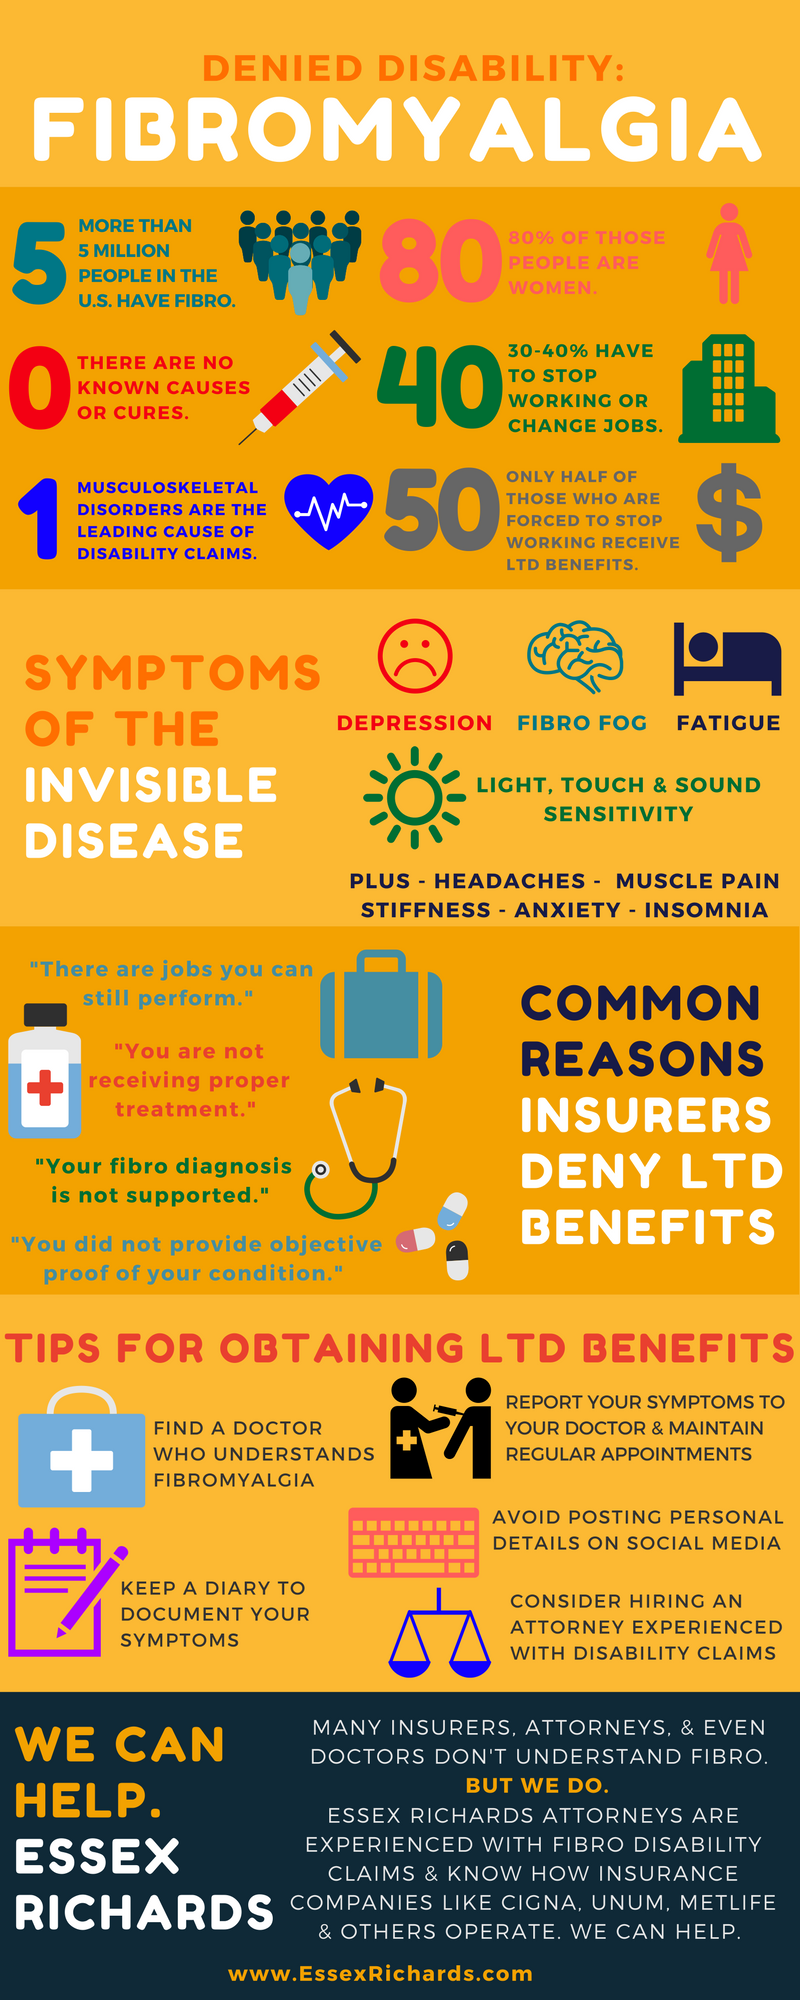 Disability Benefits for Fibromyalgia tips for obtaining